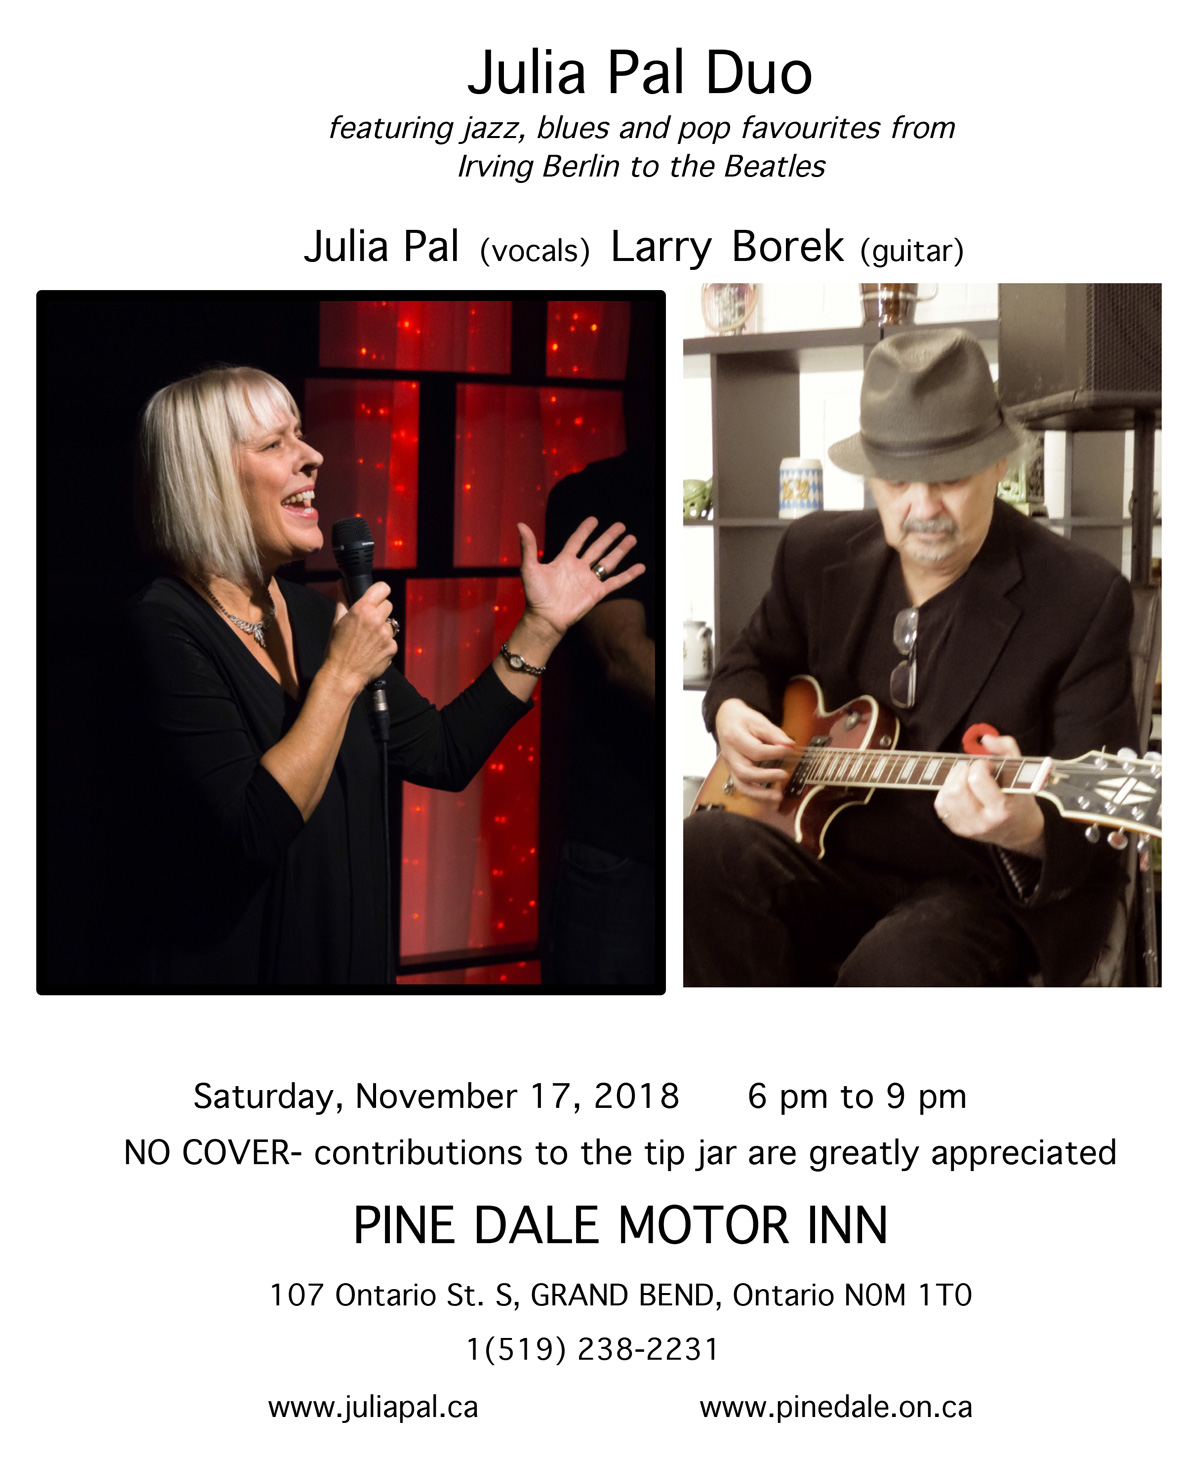 Julia Pal Duo - Nov. 17, 2018 - Pine Dale Motor Inn